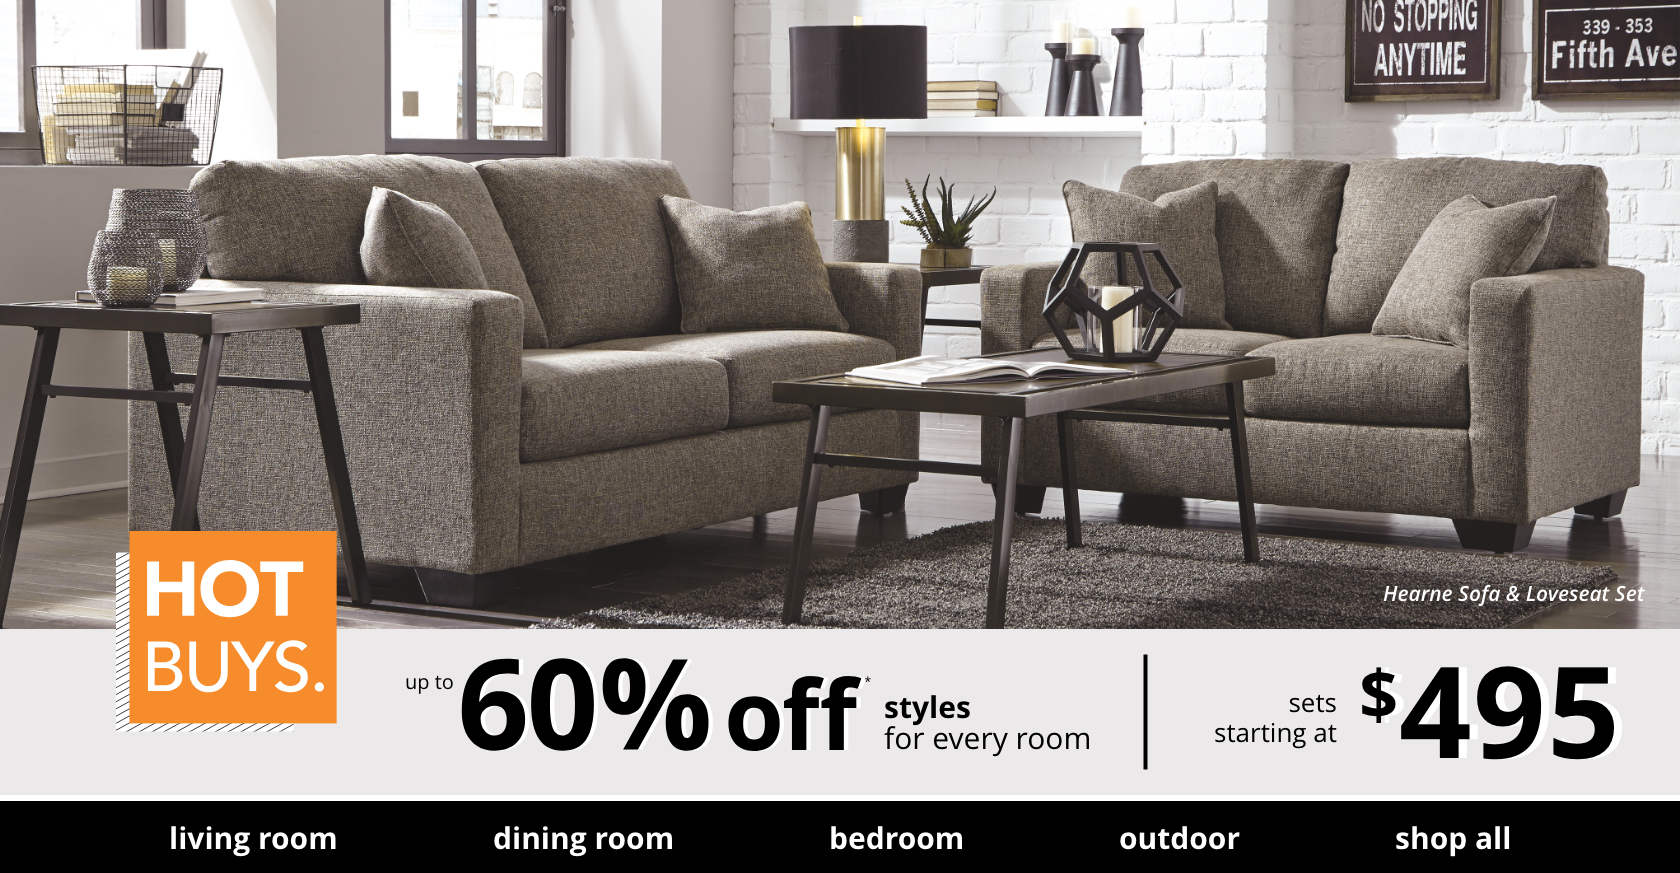 Nice Shop Our Collection Of Hot Buys From Ashley Furniture HomeStore. Enjoy Free  Shipping On A